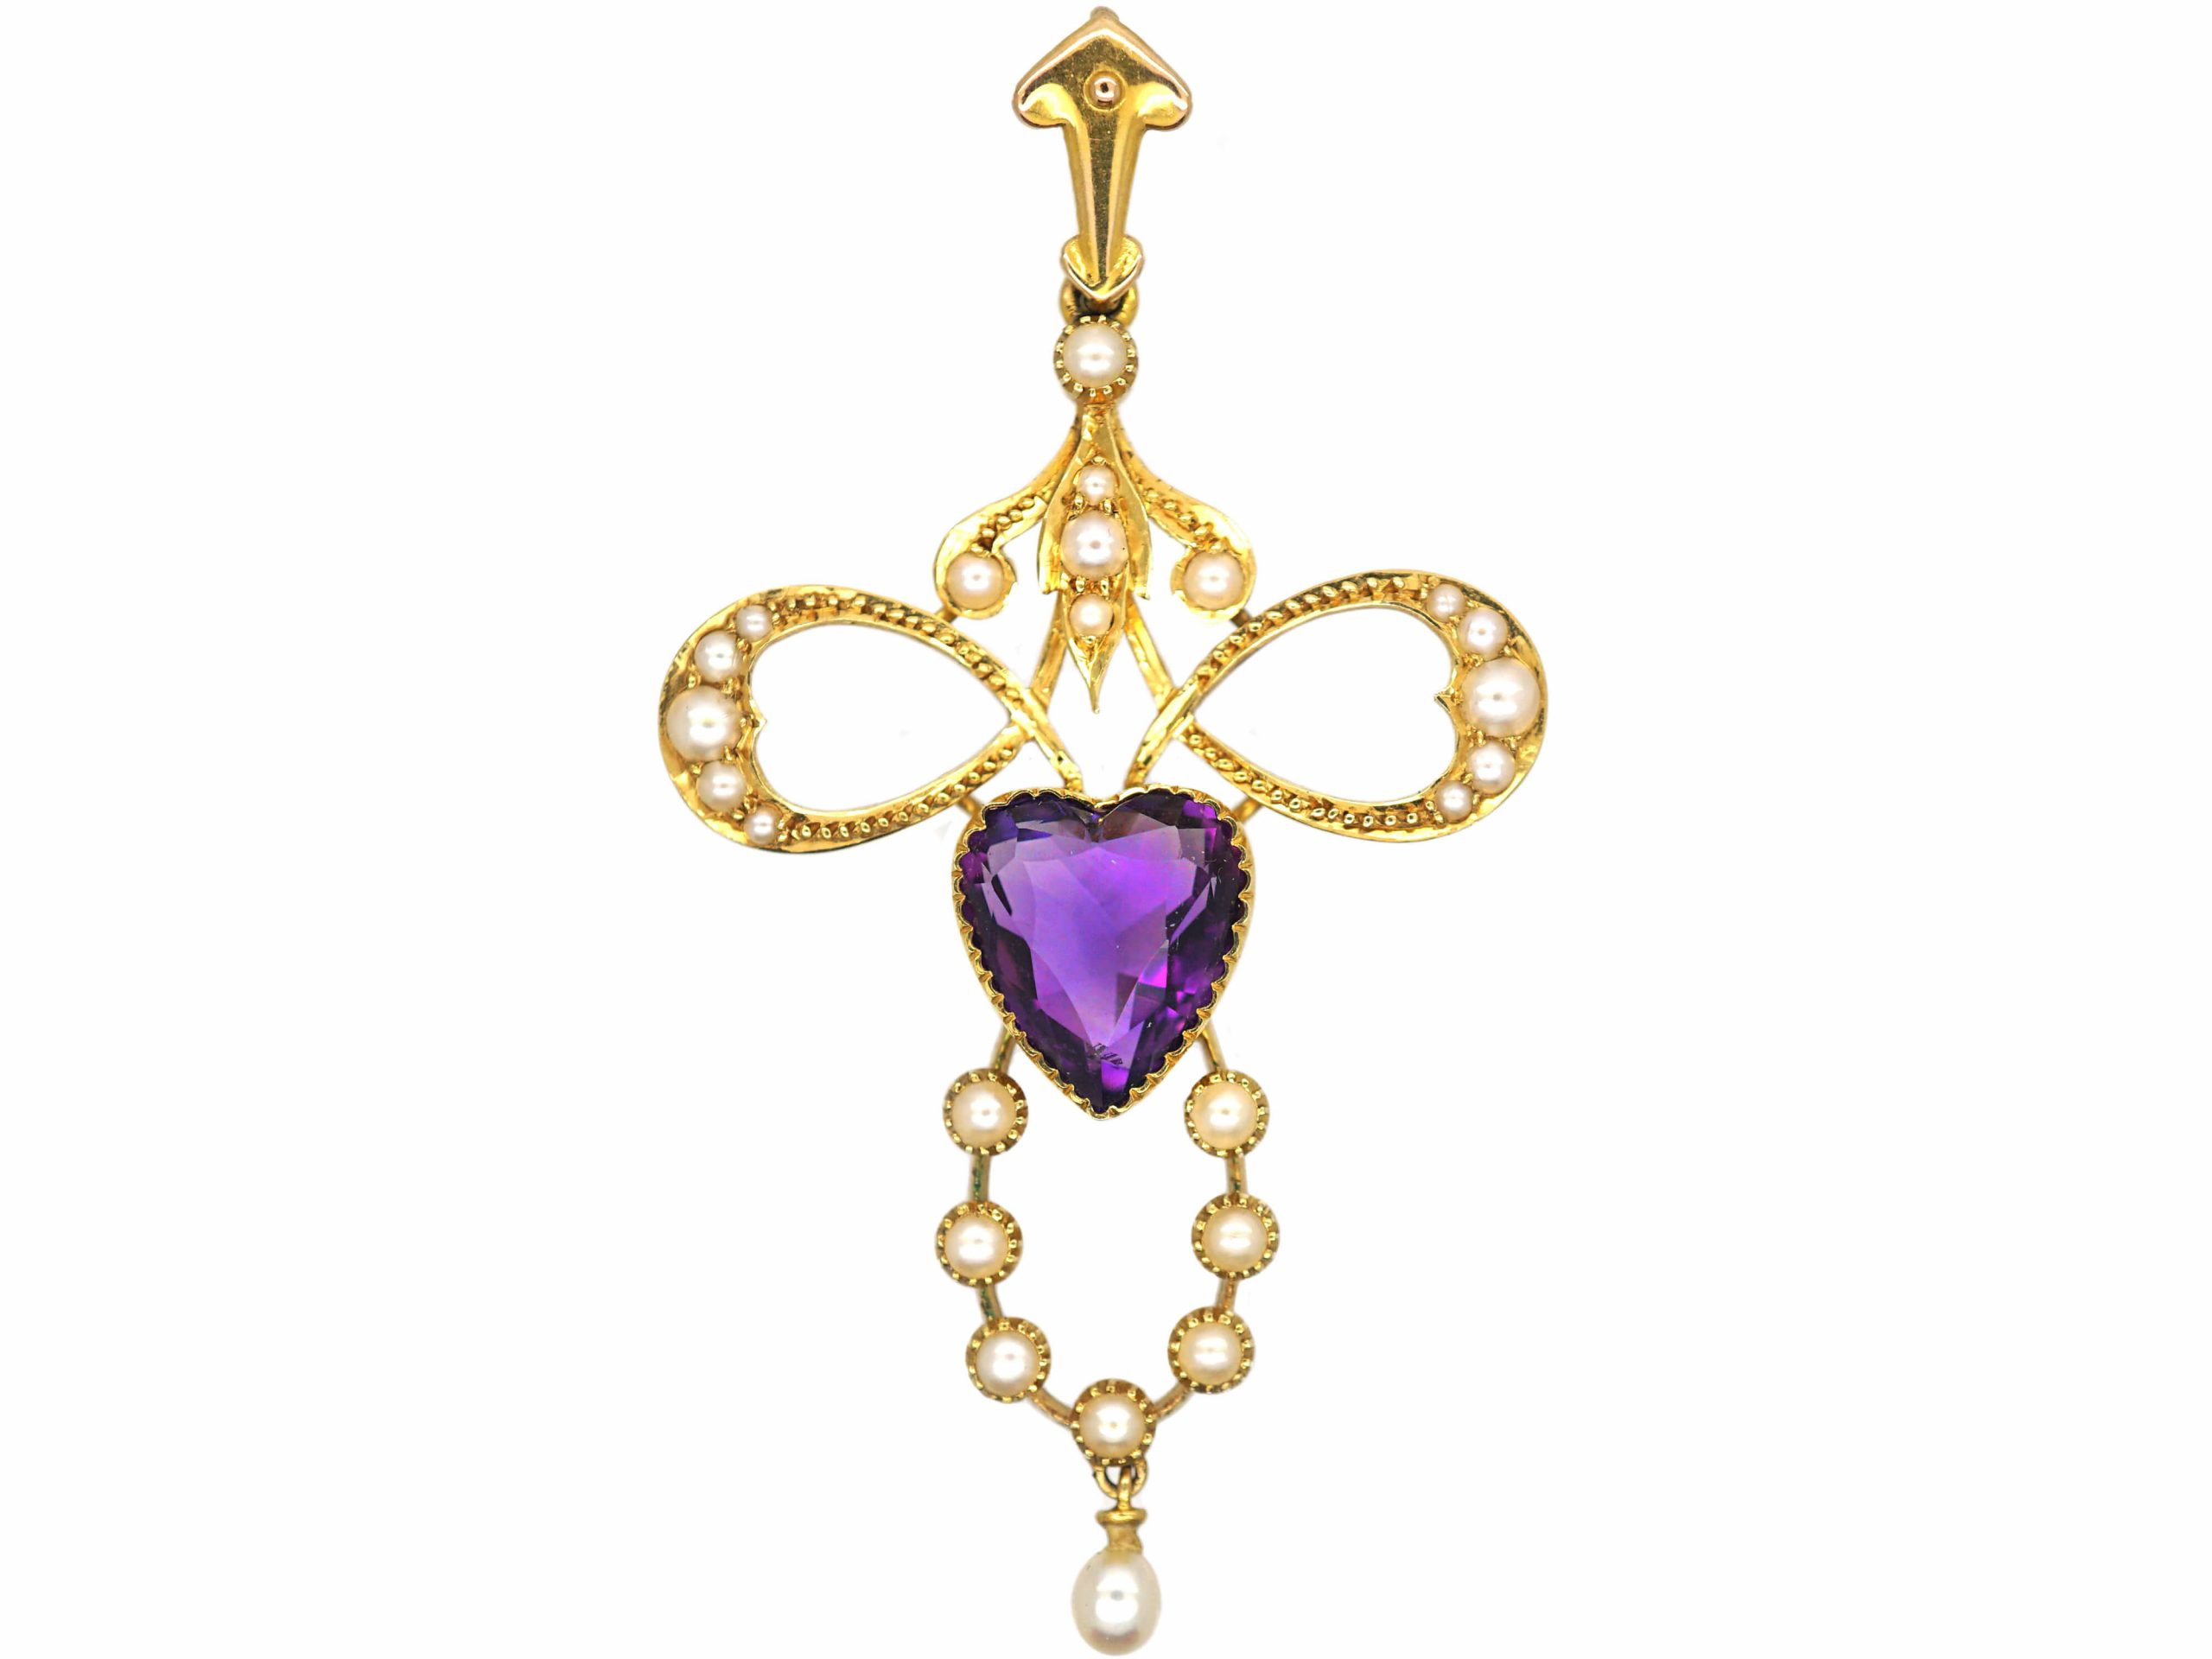 Edwardian 15ct Gold Pendant set with a Heart Shaped Amethyst & Natural Split Pearls in Original Case